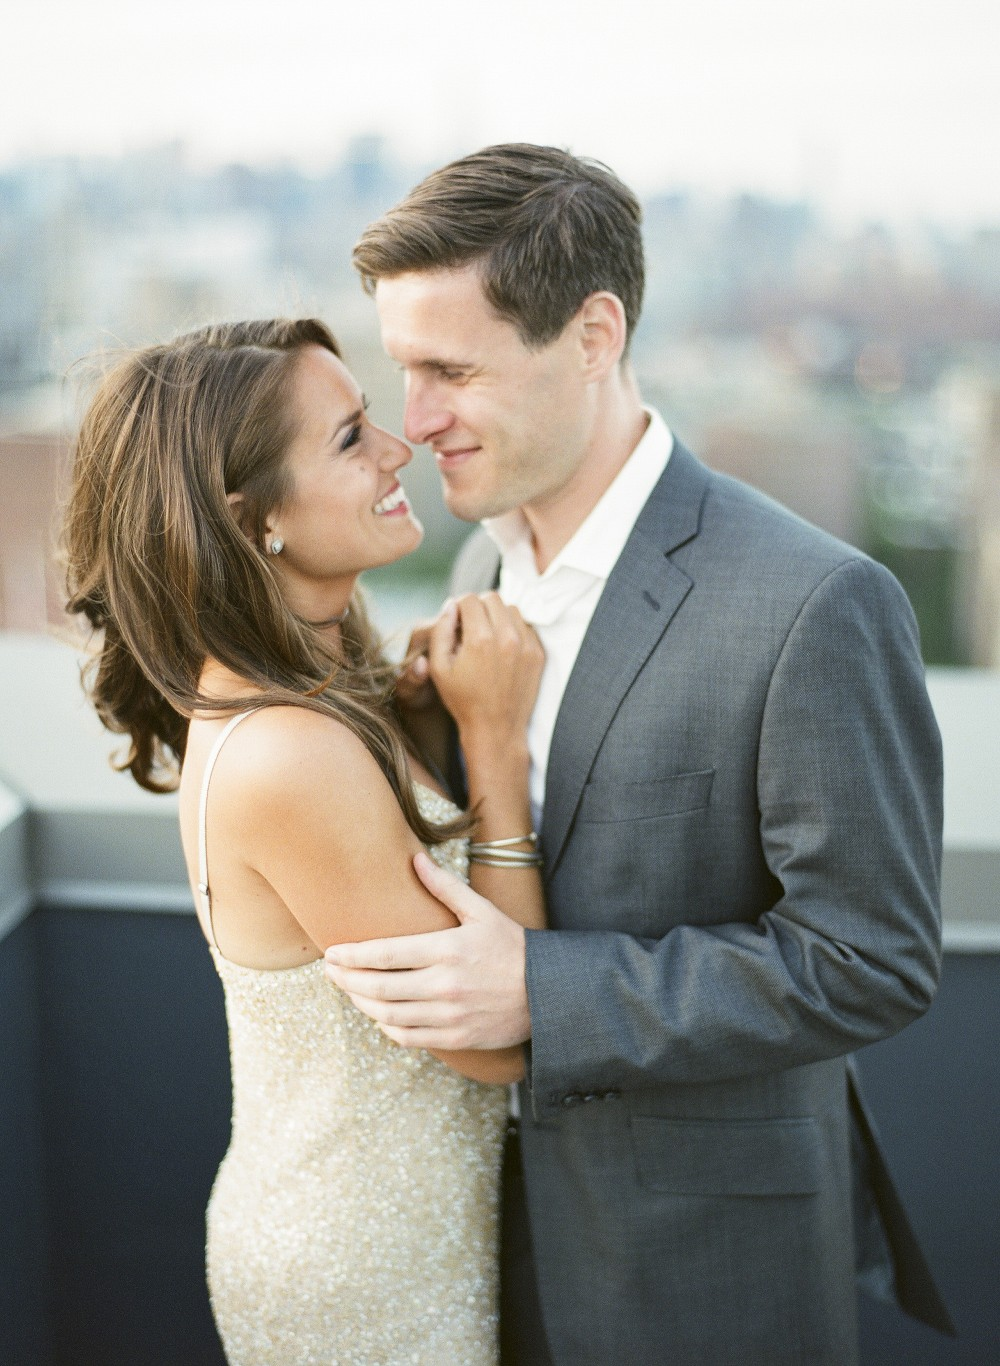 Image 5 of Emily and Paul | New York City Highline Proposal